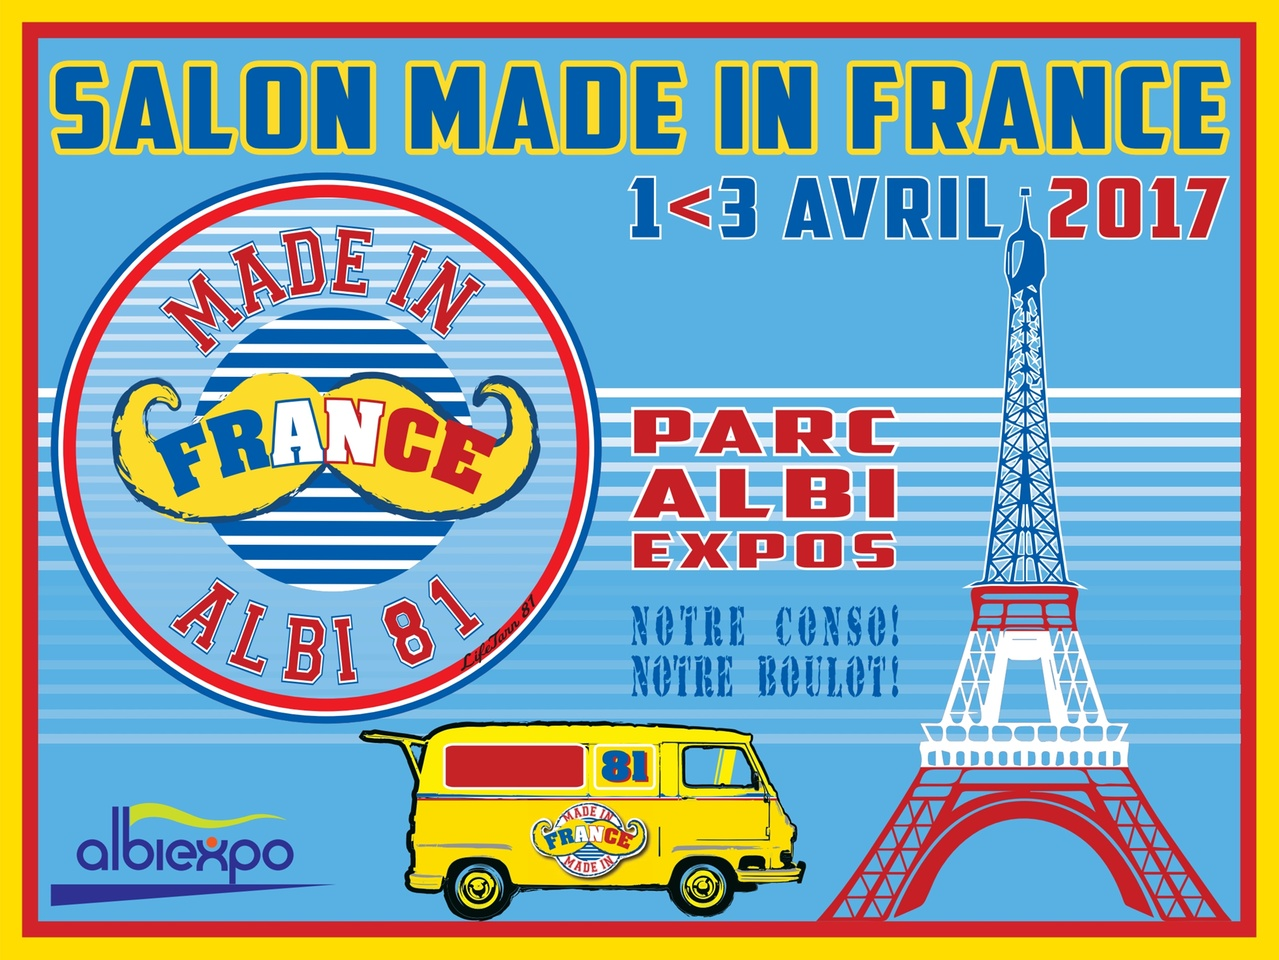 Albi salon du made in france au parc des expositions for Salon made in france 2017